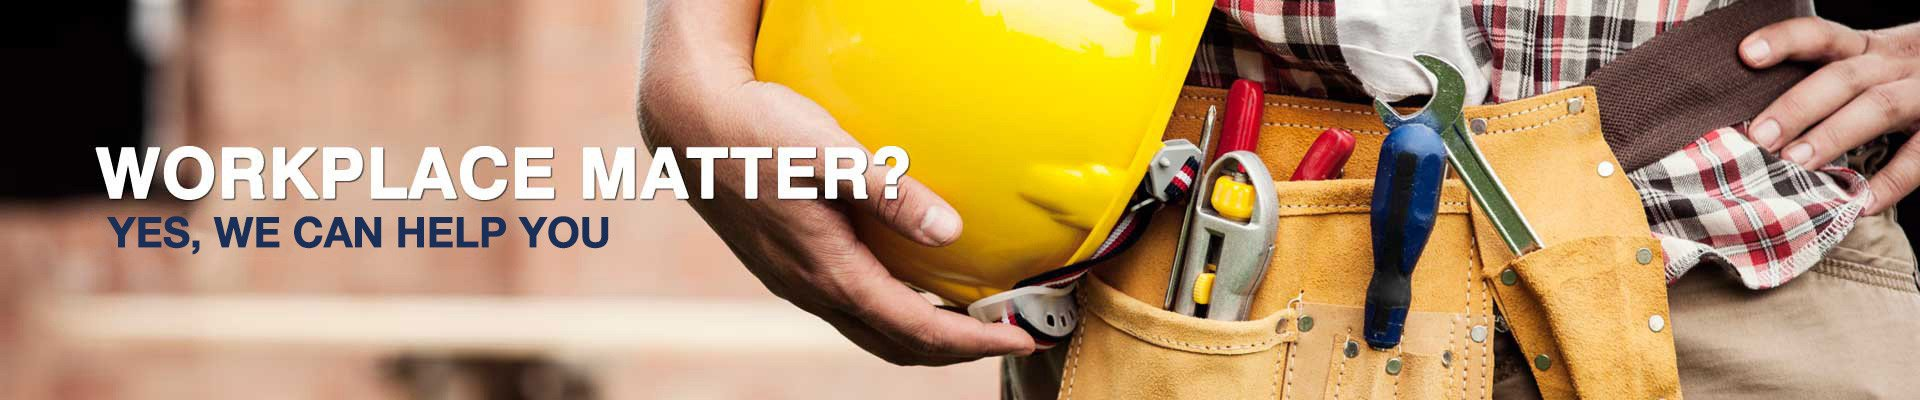 Workplace matter? Yes, we can help you